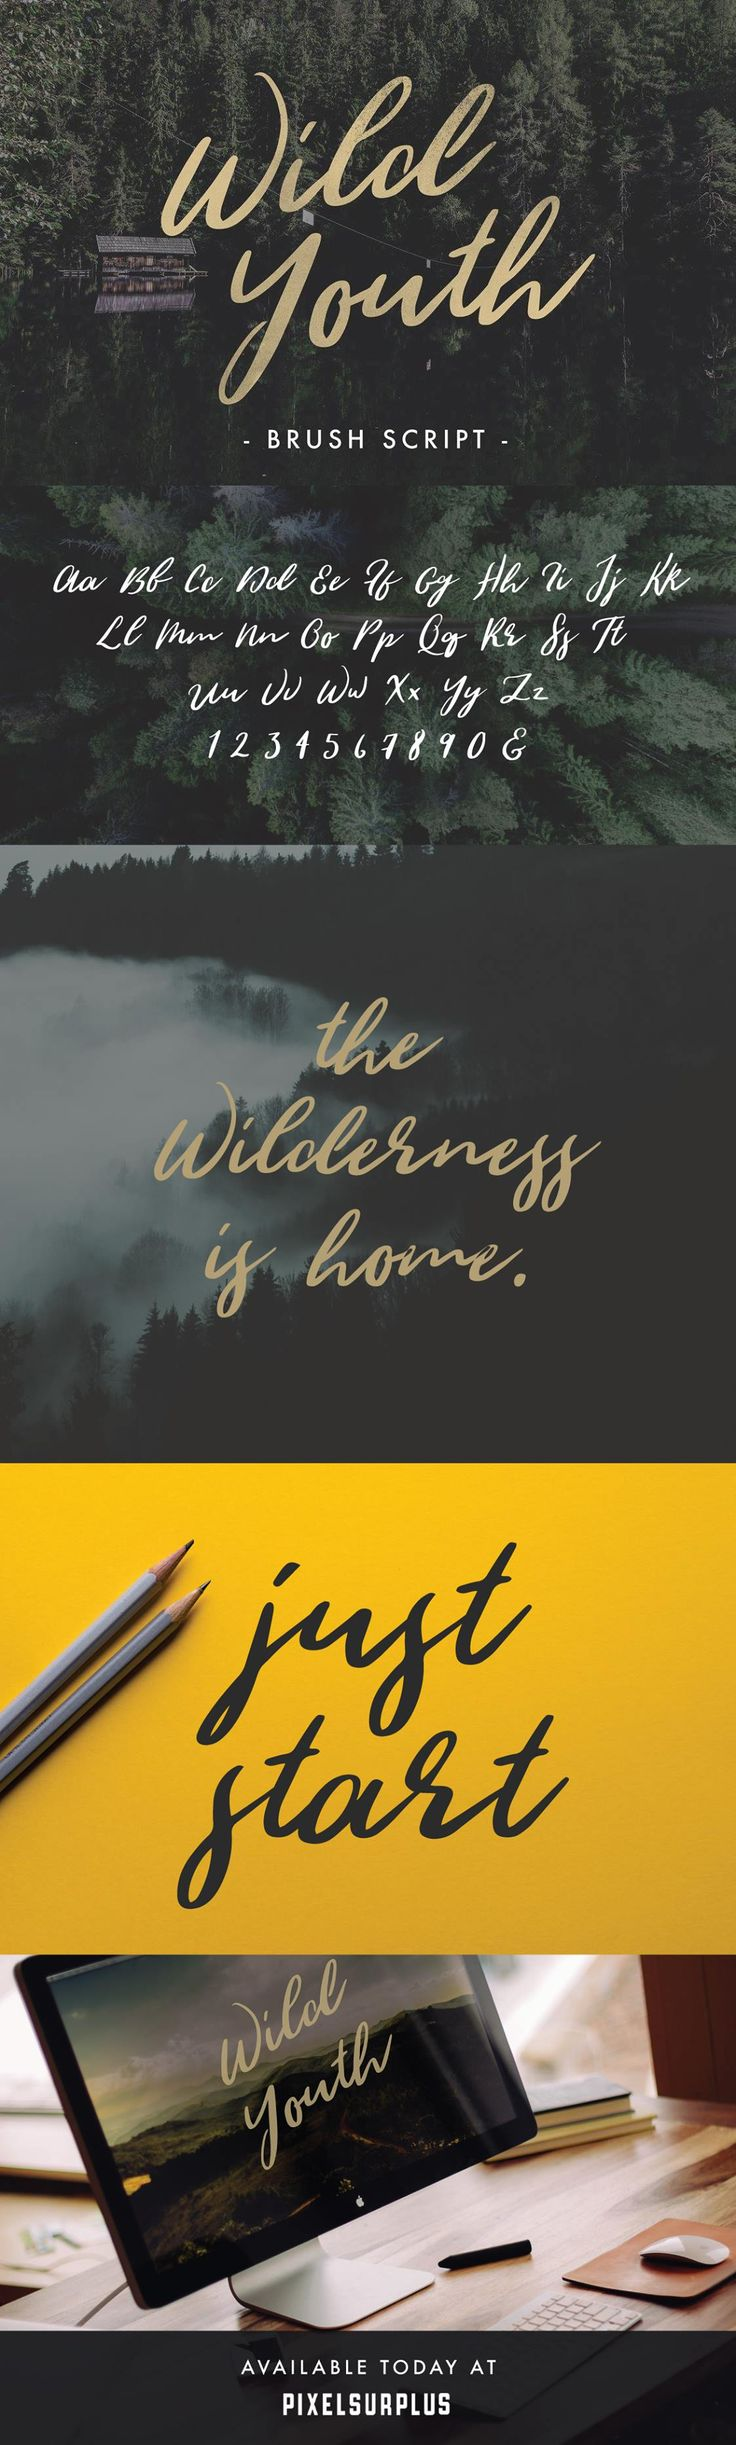 Wild Youth is another beautiful hand drawn brush script font from Jeremy  Vessey.  Wild Youth is a modern font with the distinct influence of  adventure and the great outdoors.  Perfect for logos, quotes,  stationary, apparel and much more  - Free for personal & commercial use  DOWNLOAD WILD YOUTH  Unlock this download by sharing on Twitter or Subscribing    Email Address *  Thank you!  CLICK HERE TO DOWNLOAD WILD YOUTH   MORE GREAT PRODUCTS FROM HUSTLE SUPPLY CO  THE GIANT BUNDLE  THE WH...